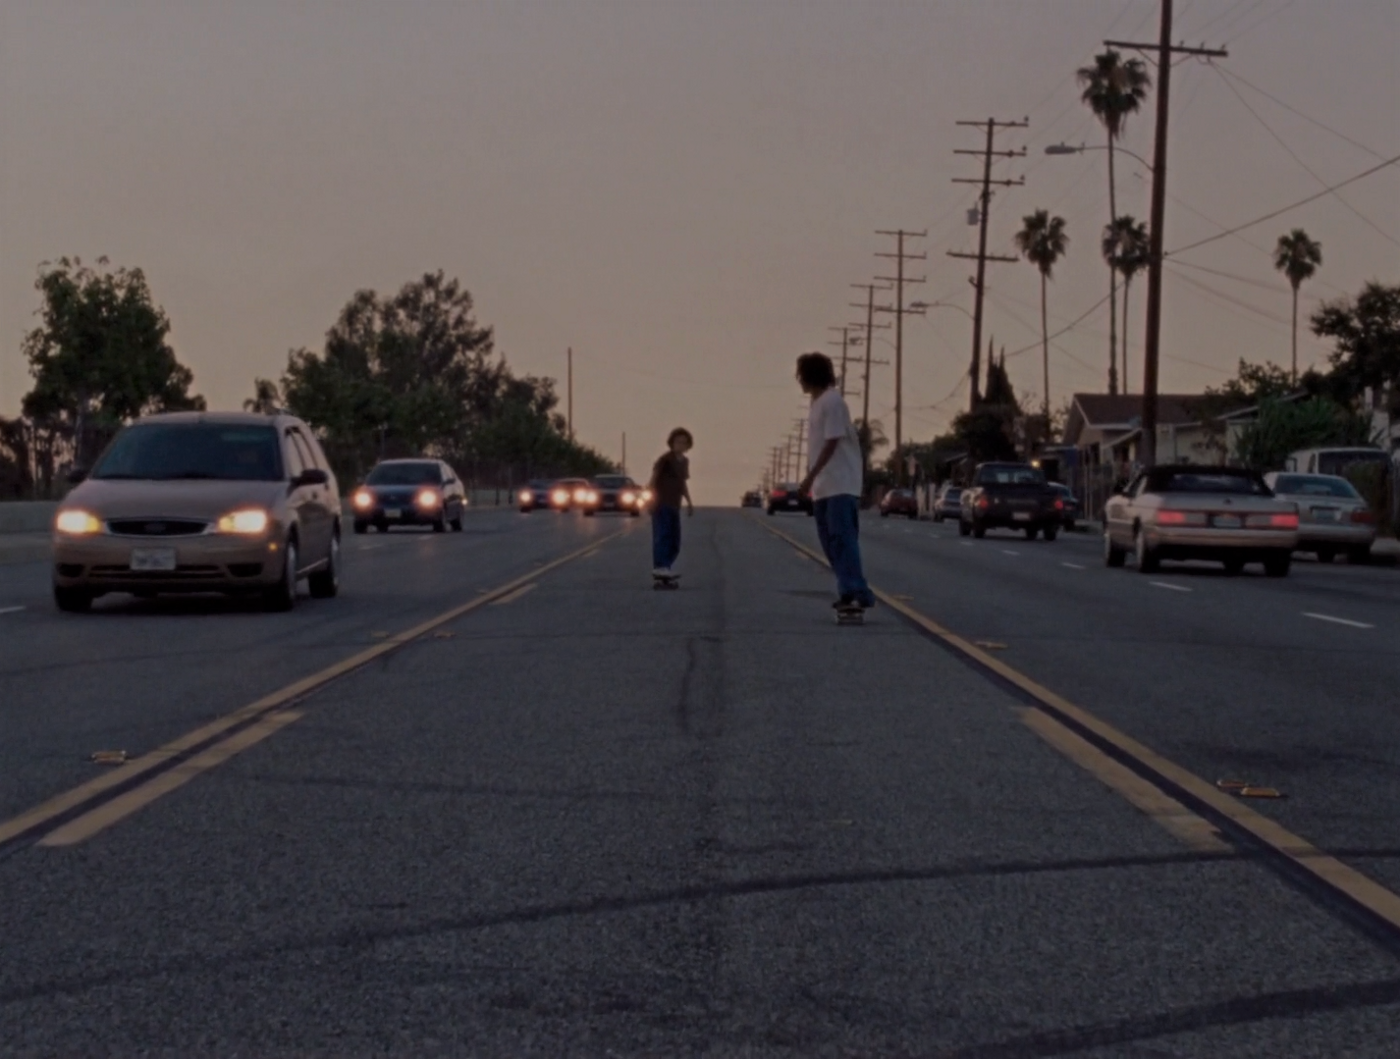 A black teenager and a white twelve year old skateboarding down the middle of a street on a busy road.